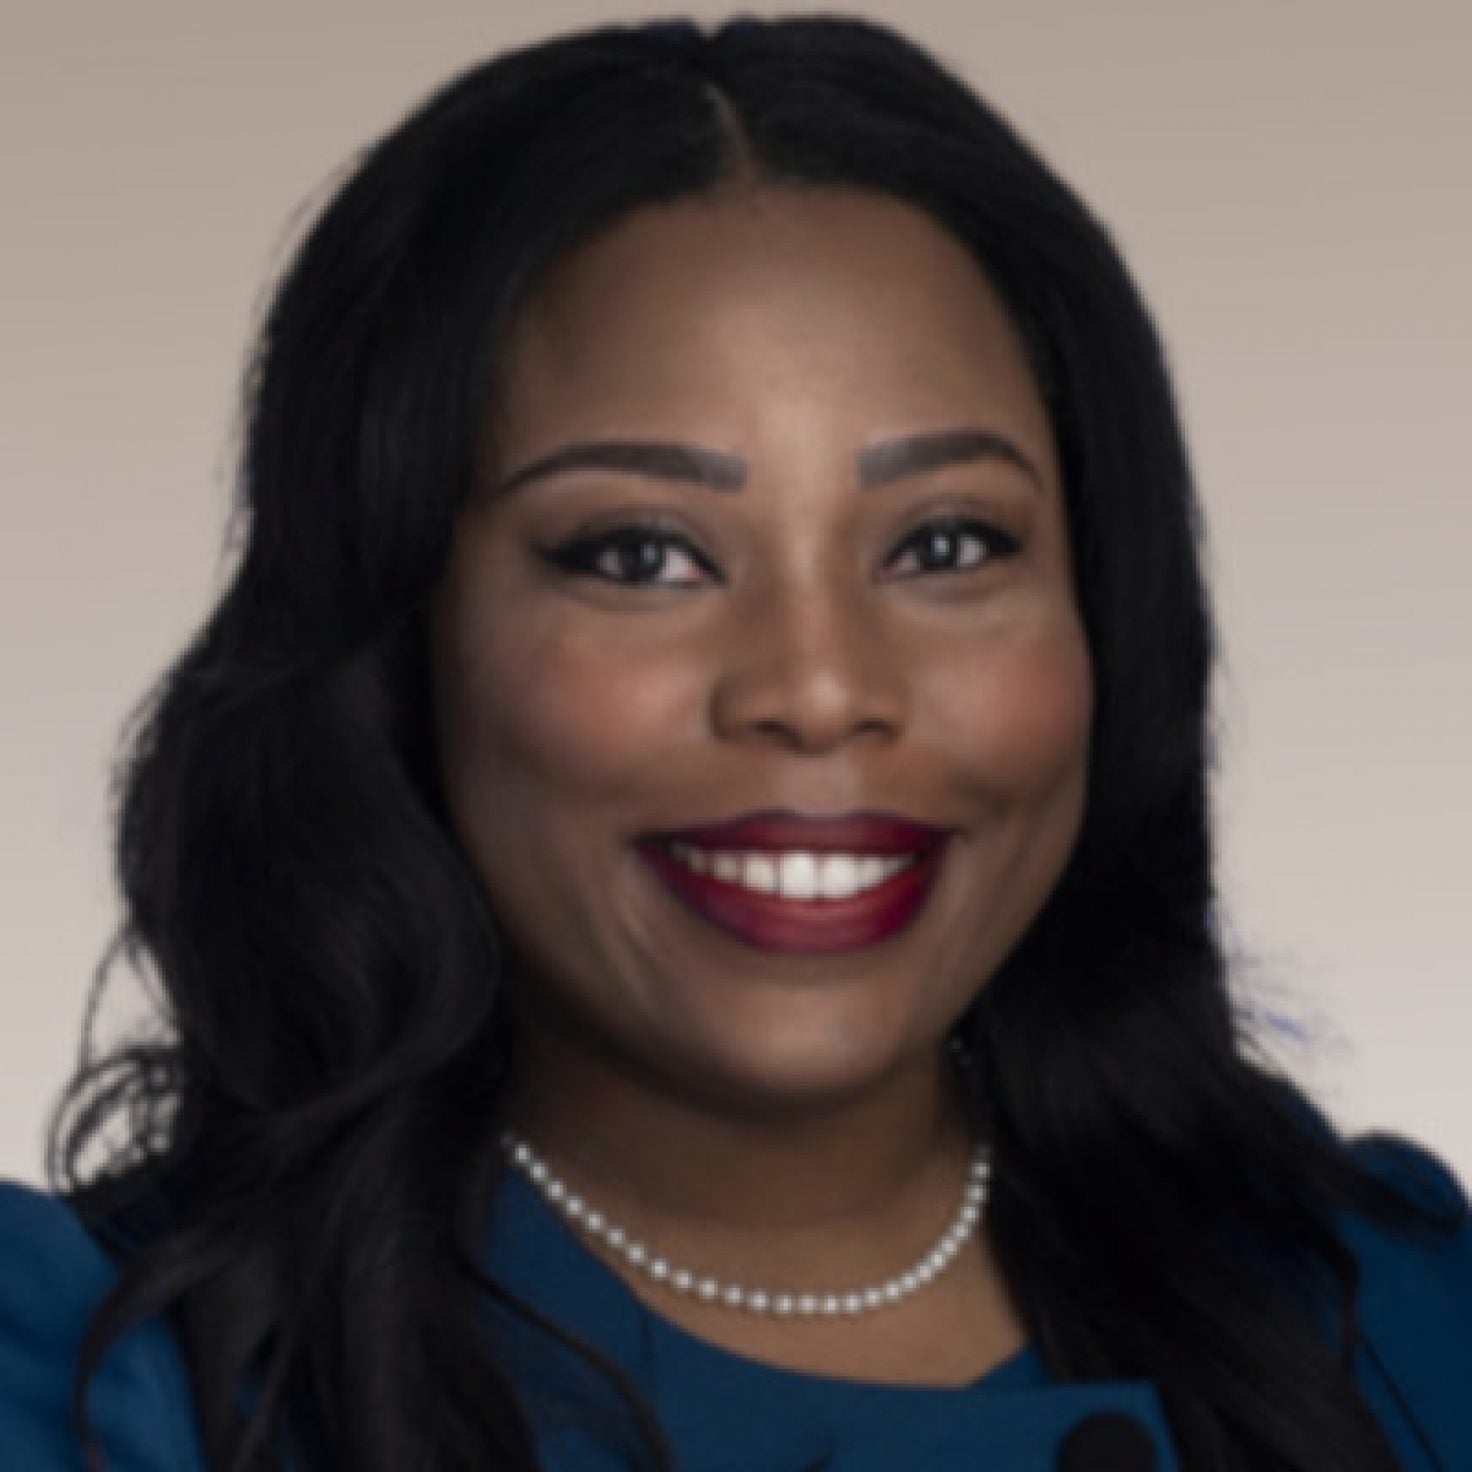 Tennessee State Senator Accused Of Embezzling $600,000 Of Federal Grant Money